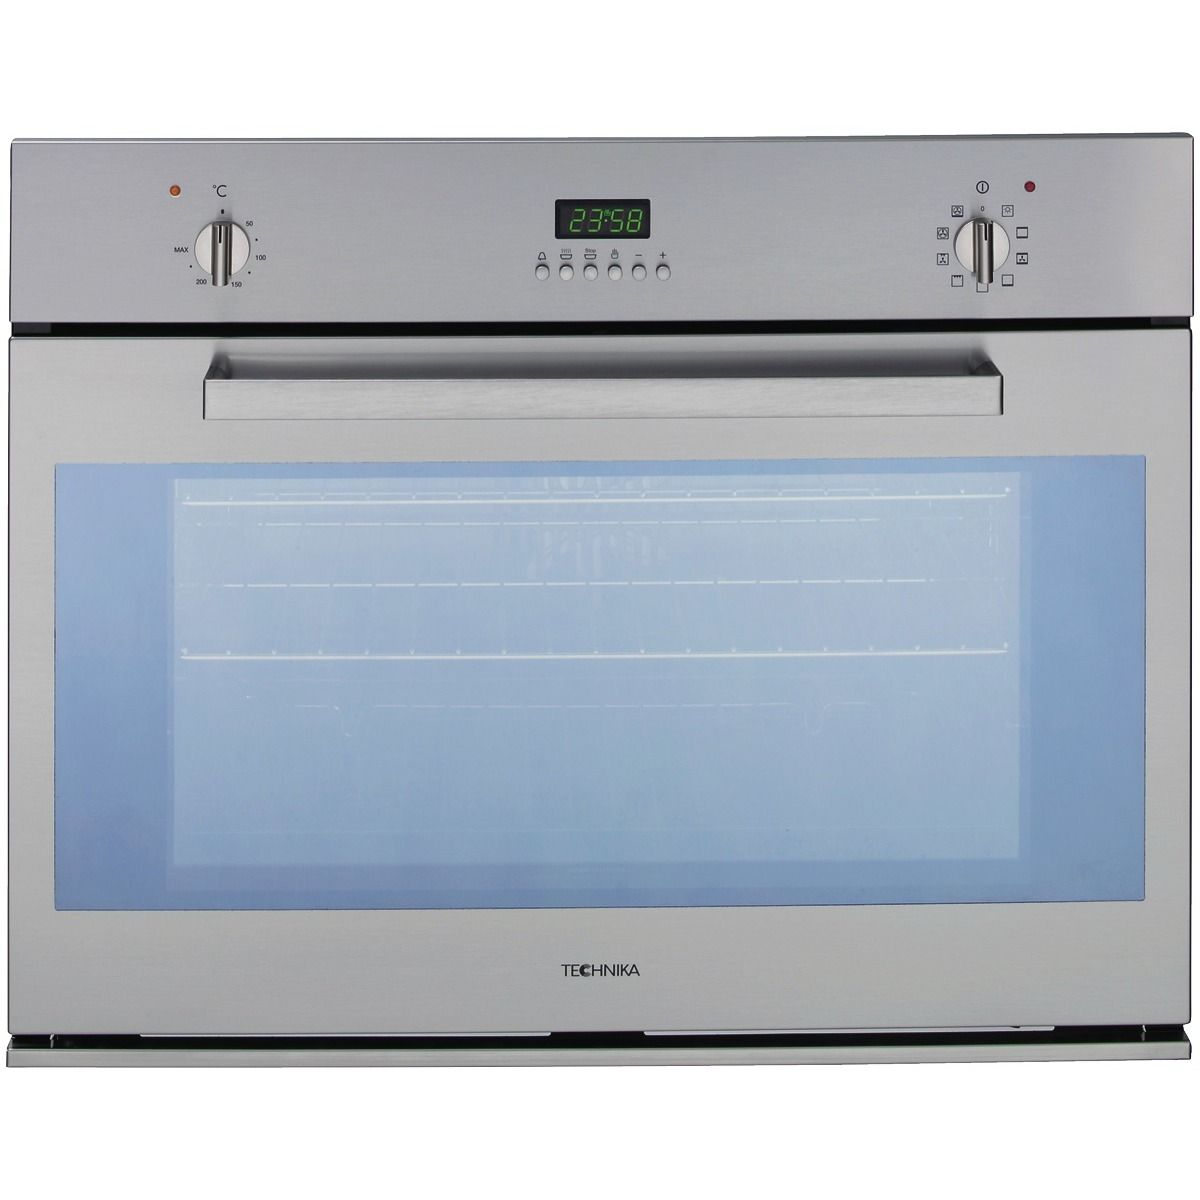 Technika B70mtiss 2 Technika 75cm Electric Oven And More At The